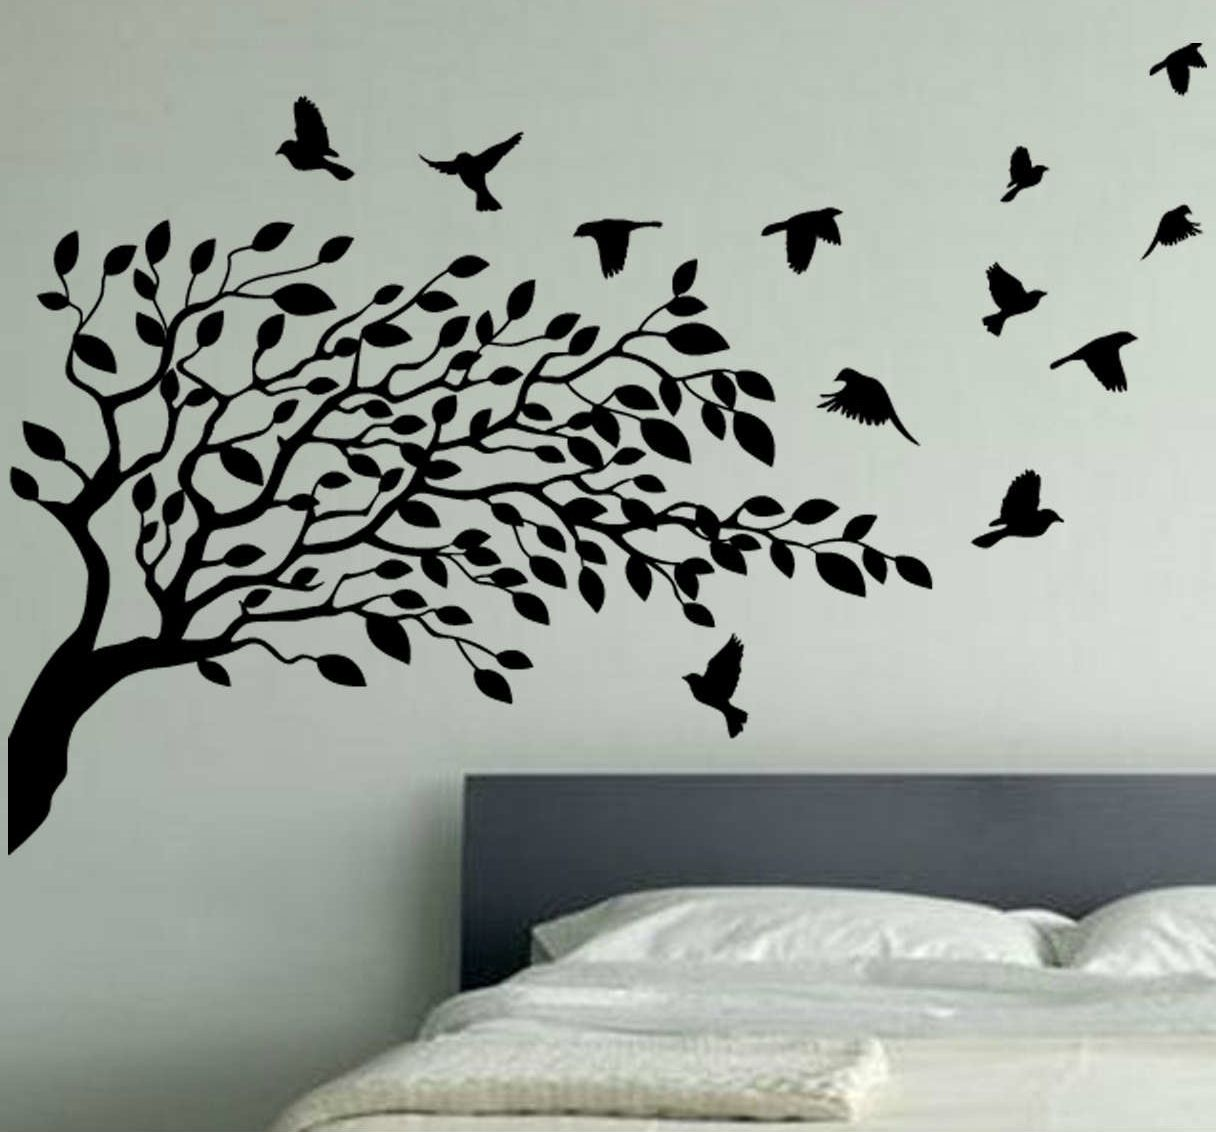 Wallpaper Wall Decals Stickers Art Vinyl Removable